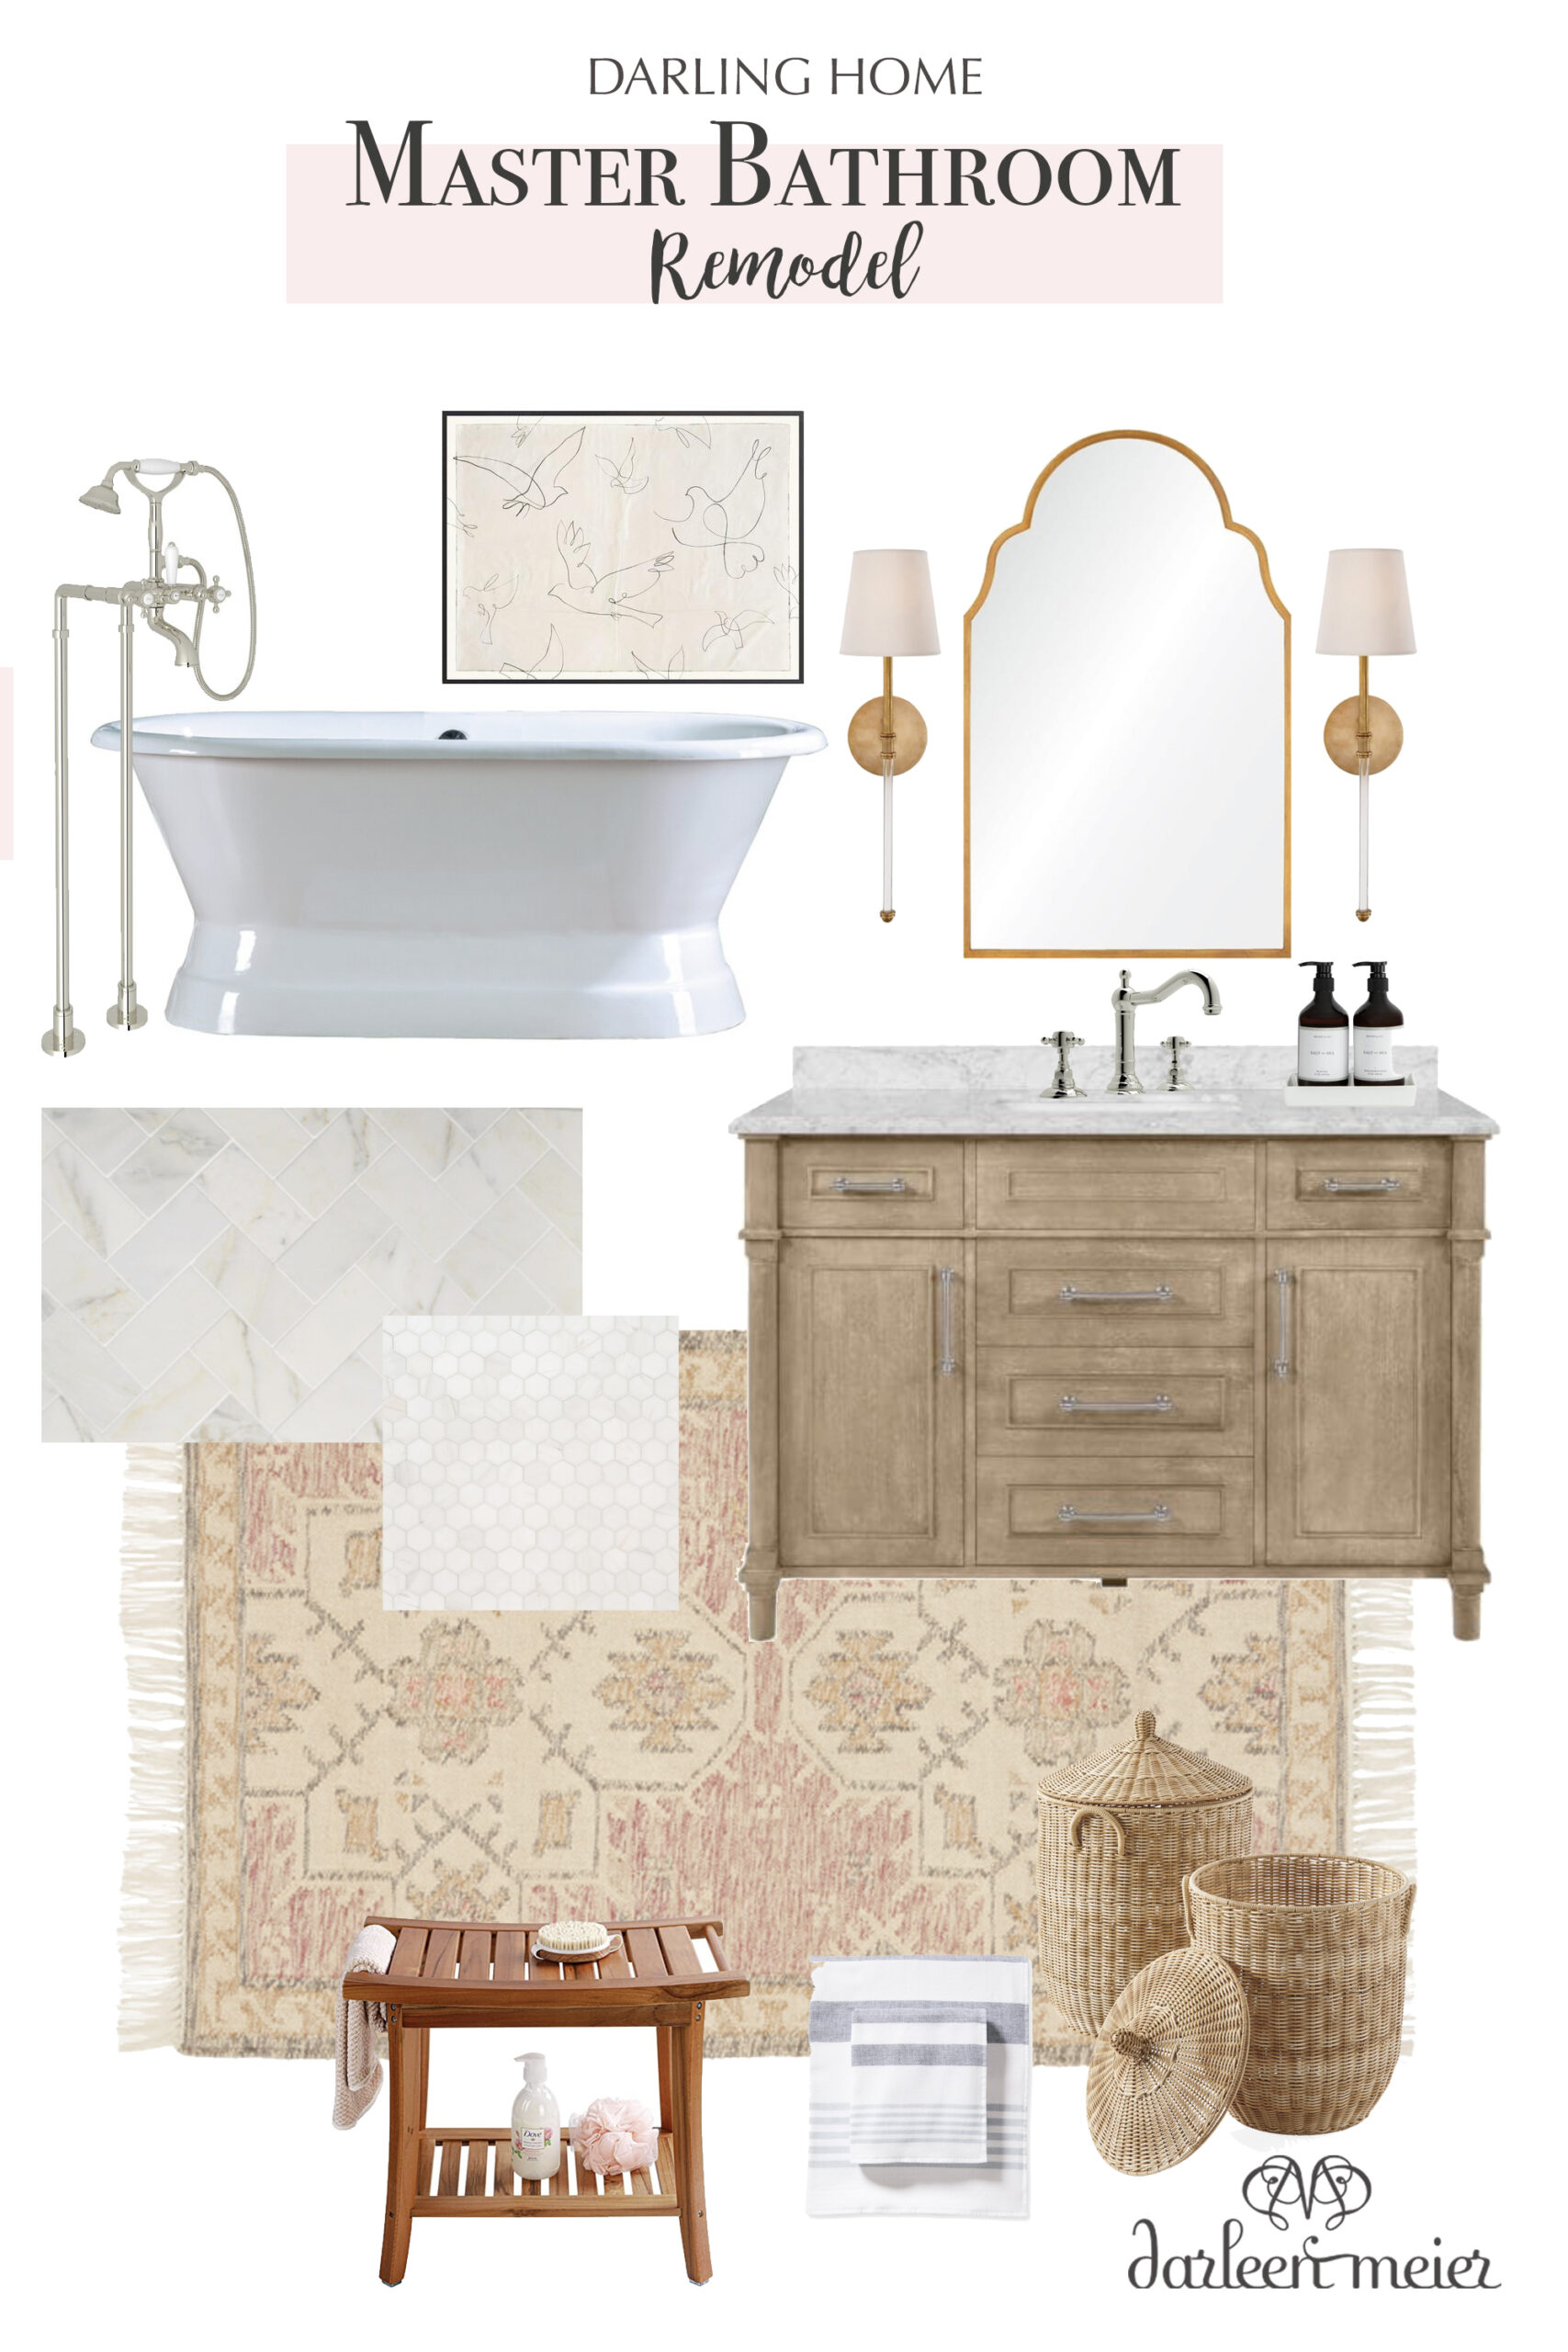 Renovation Ideas for Our Master Bathroom Remodel.  Details in the Master bathroom inspiration board with before pictures. || Darling Darleen Top CT Lifestyle Blogger #darlingdarleen